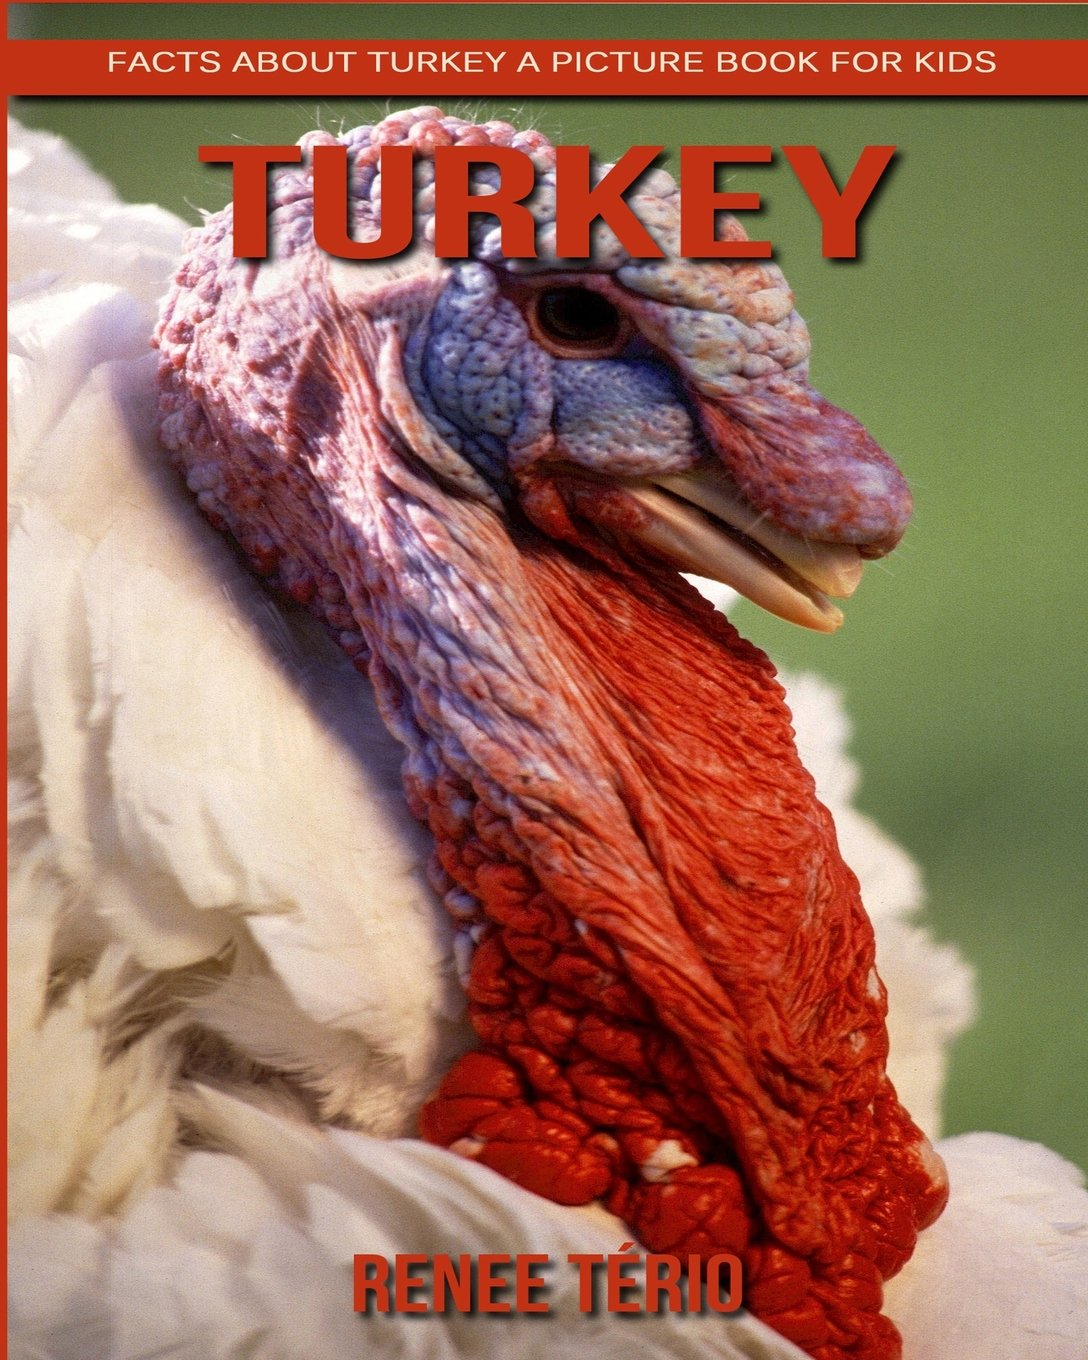 Childrens Book: Amazing Facts & Pictures about Turkeys